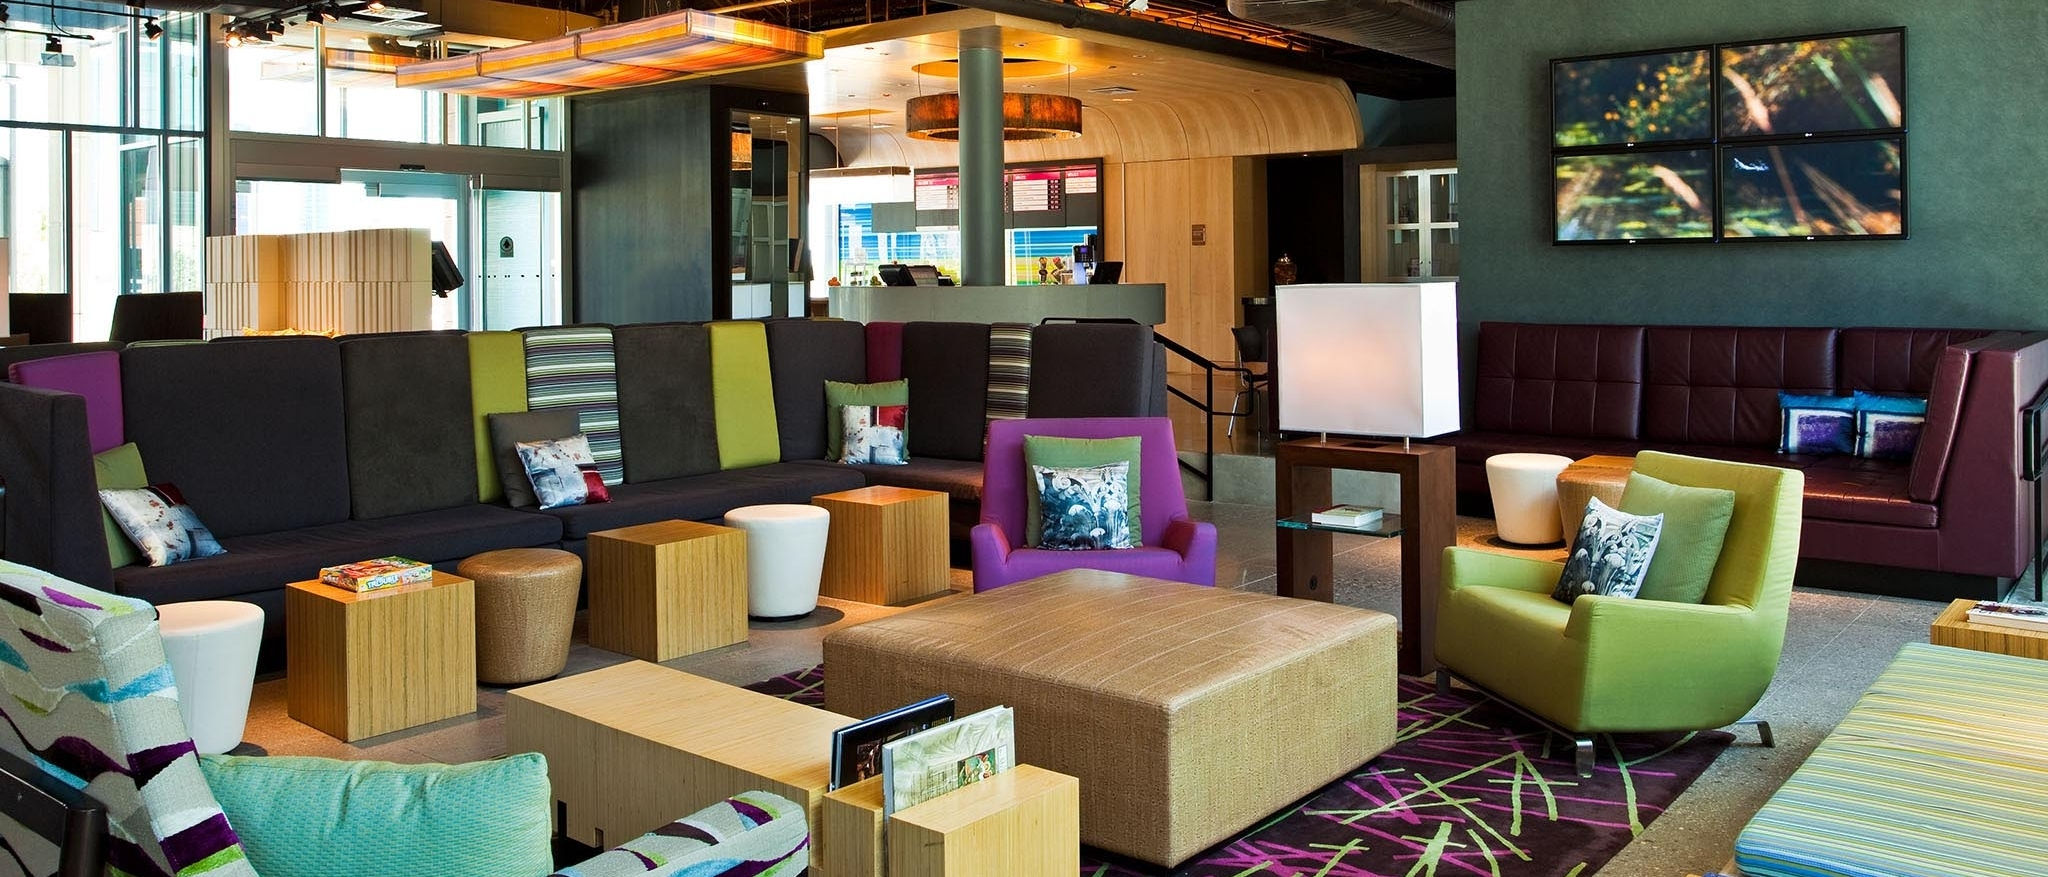 Aloft Las Colinas - Re:mix(SM) lounge